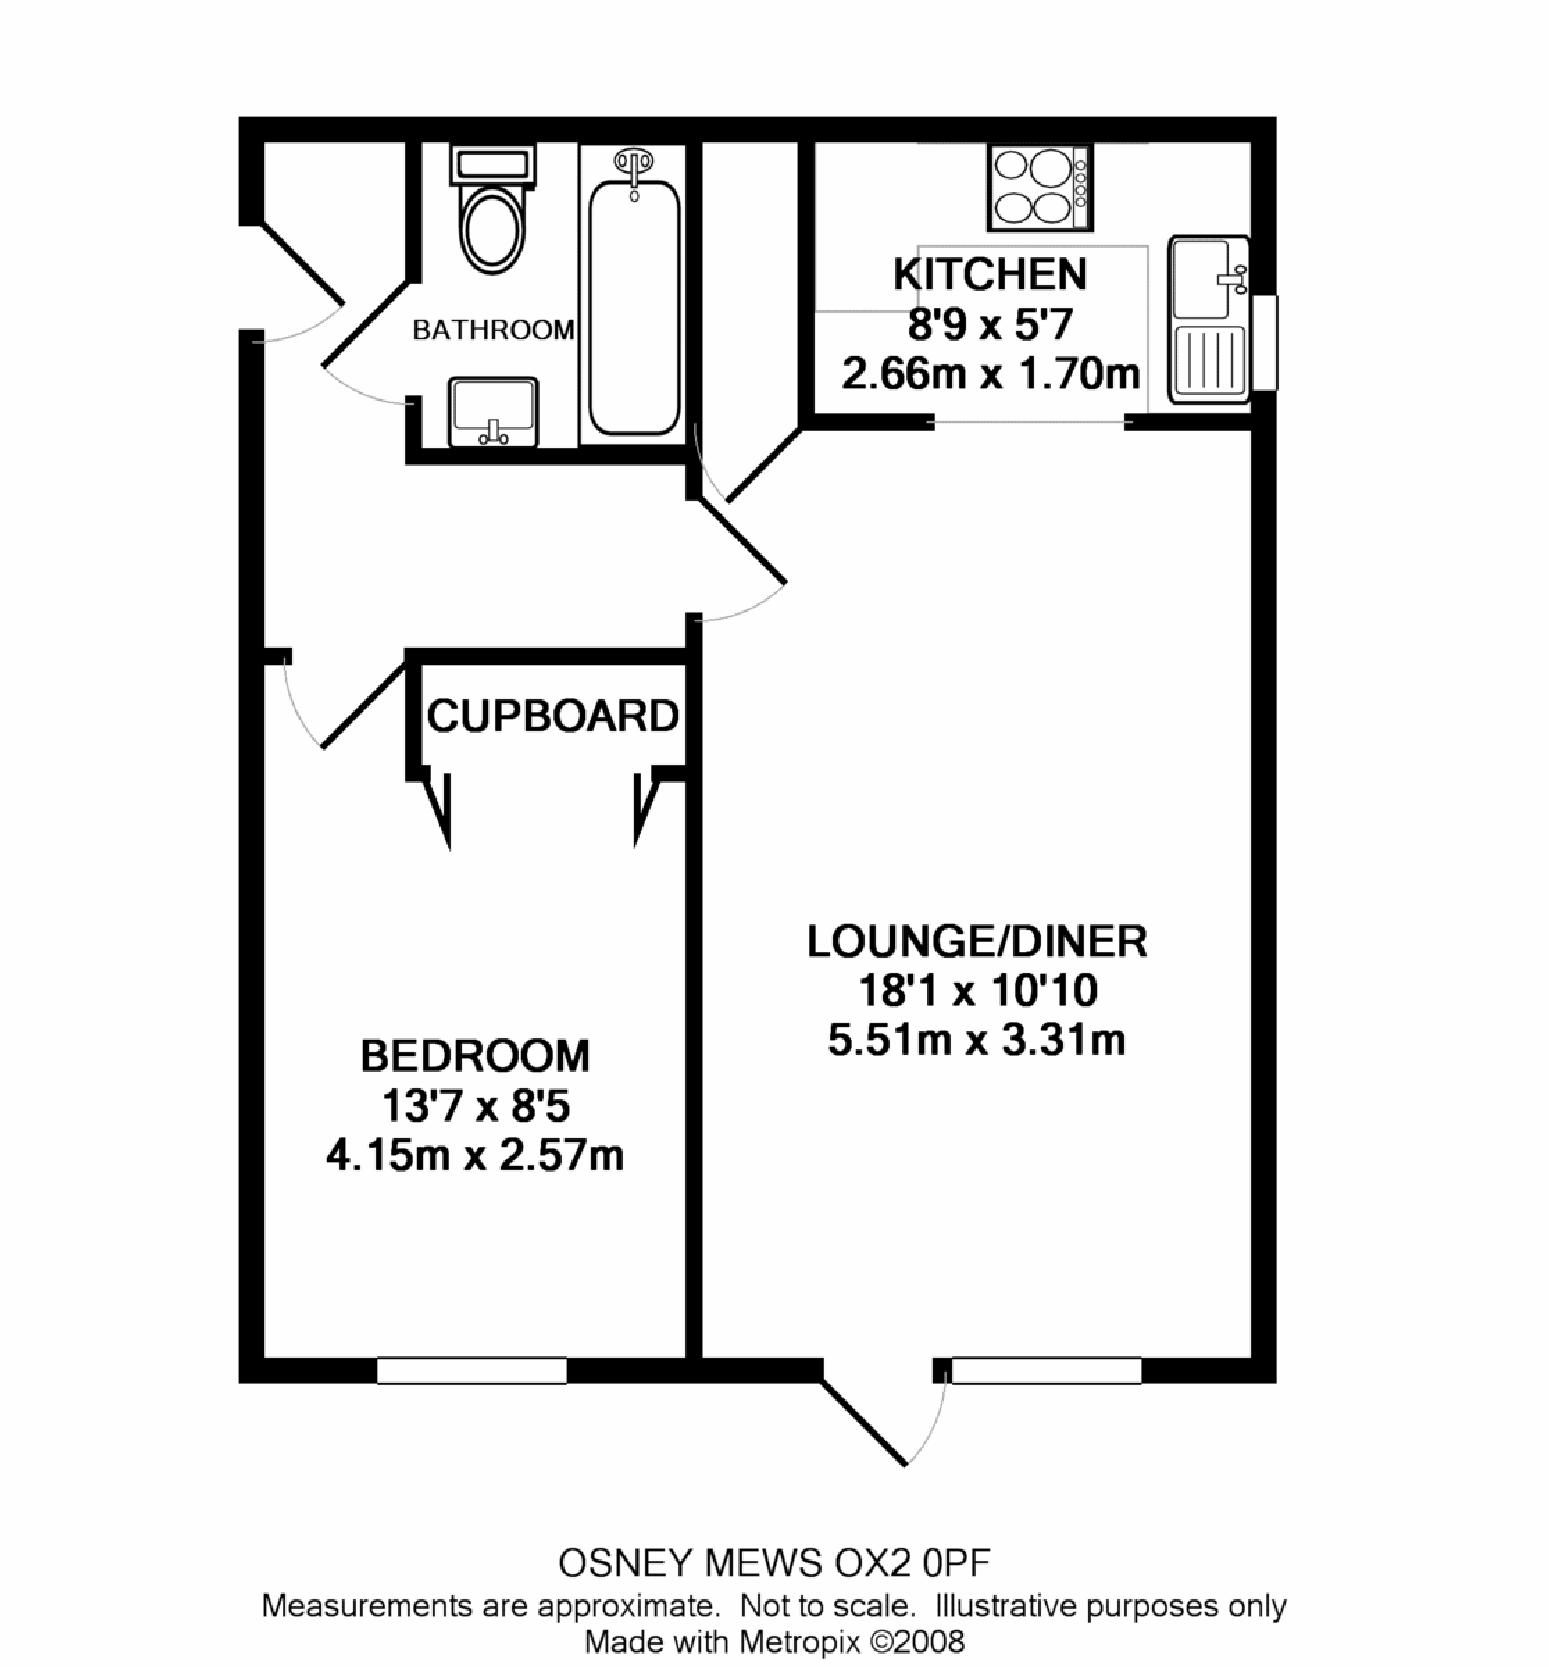 Henry road central oxford ox2 ref 50336 oxford for One bedroom flat design plans